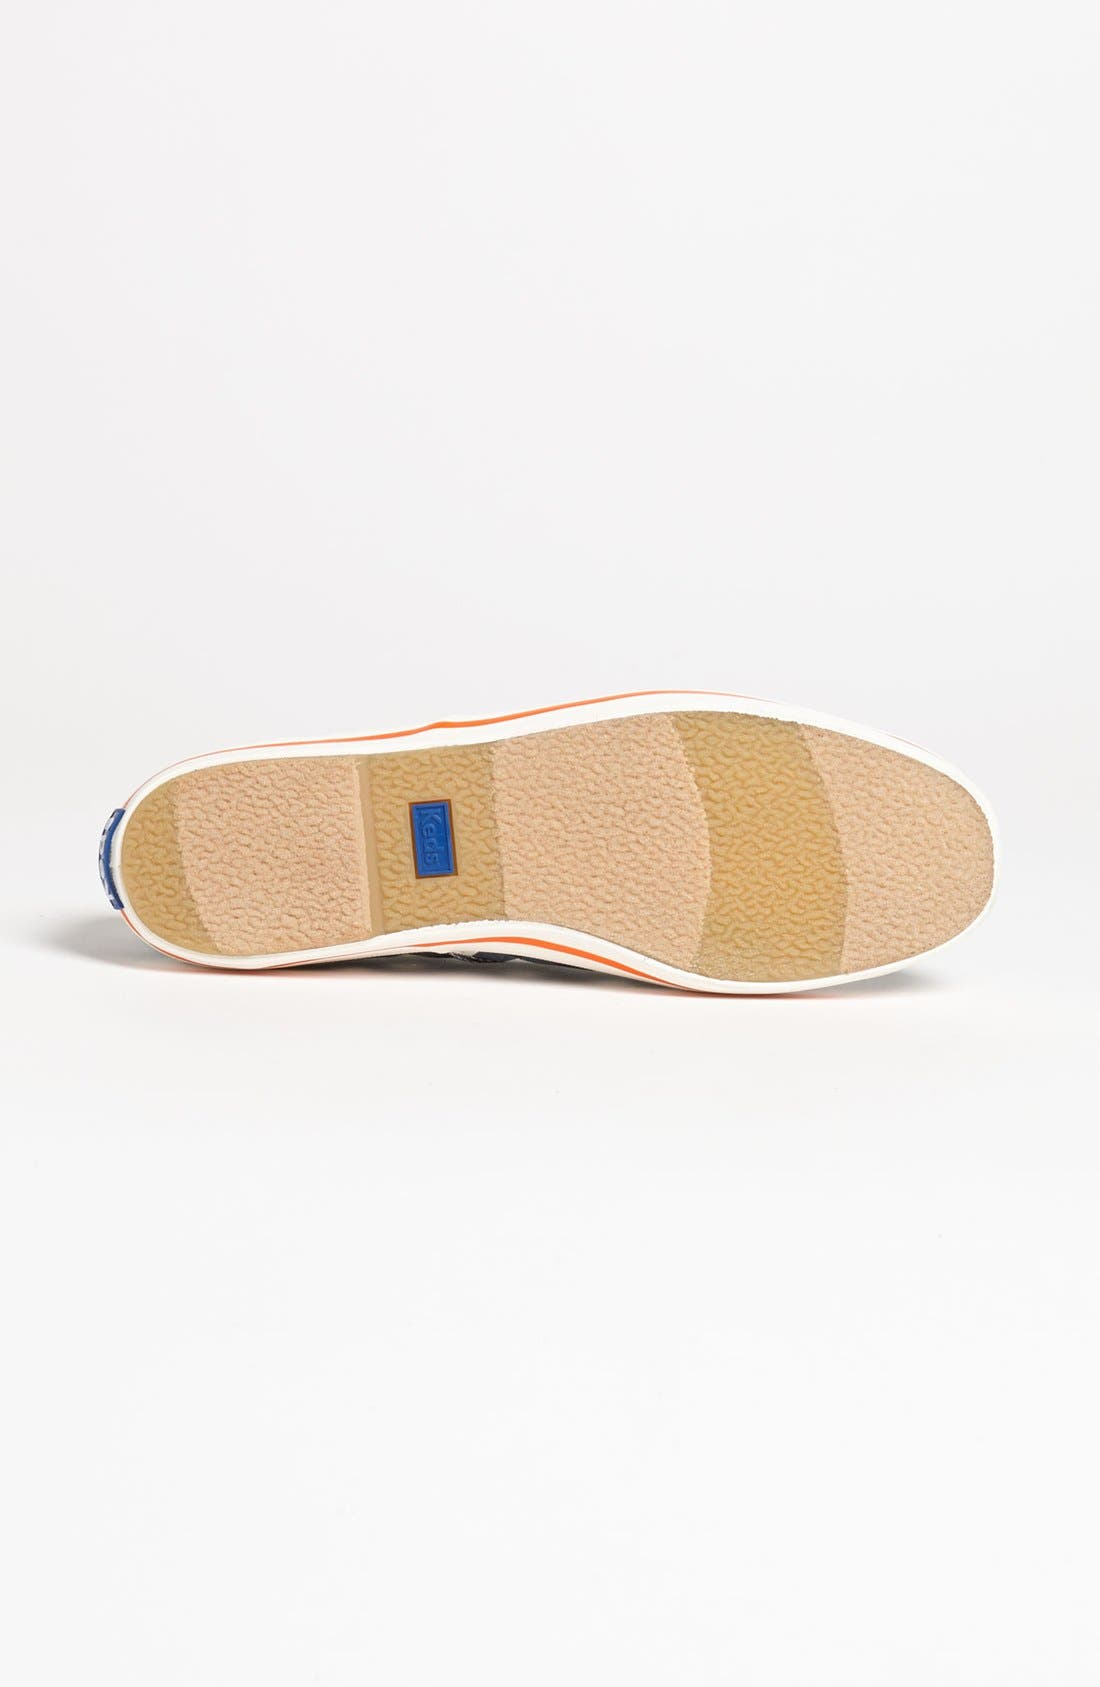 ,                             Keds<sup>®</sup> for kate spade new york 'kick' sneaker,                             Alternate thumbnail 7, color,                             410